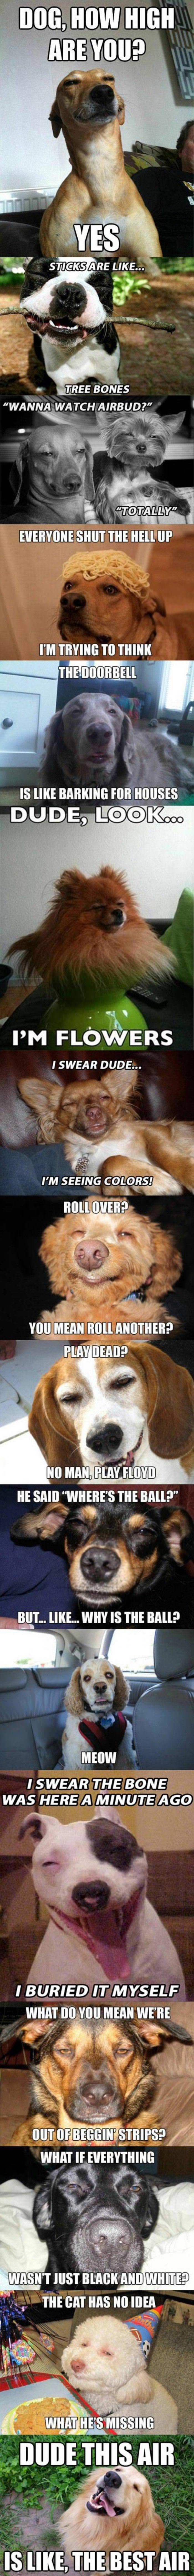 stoner dogs funny picture